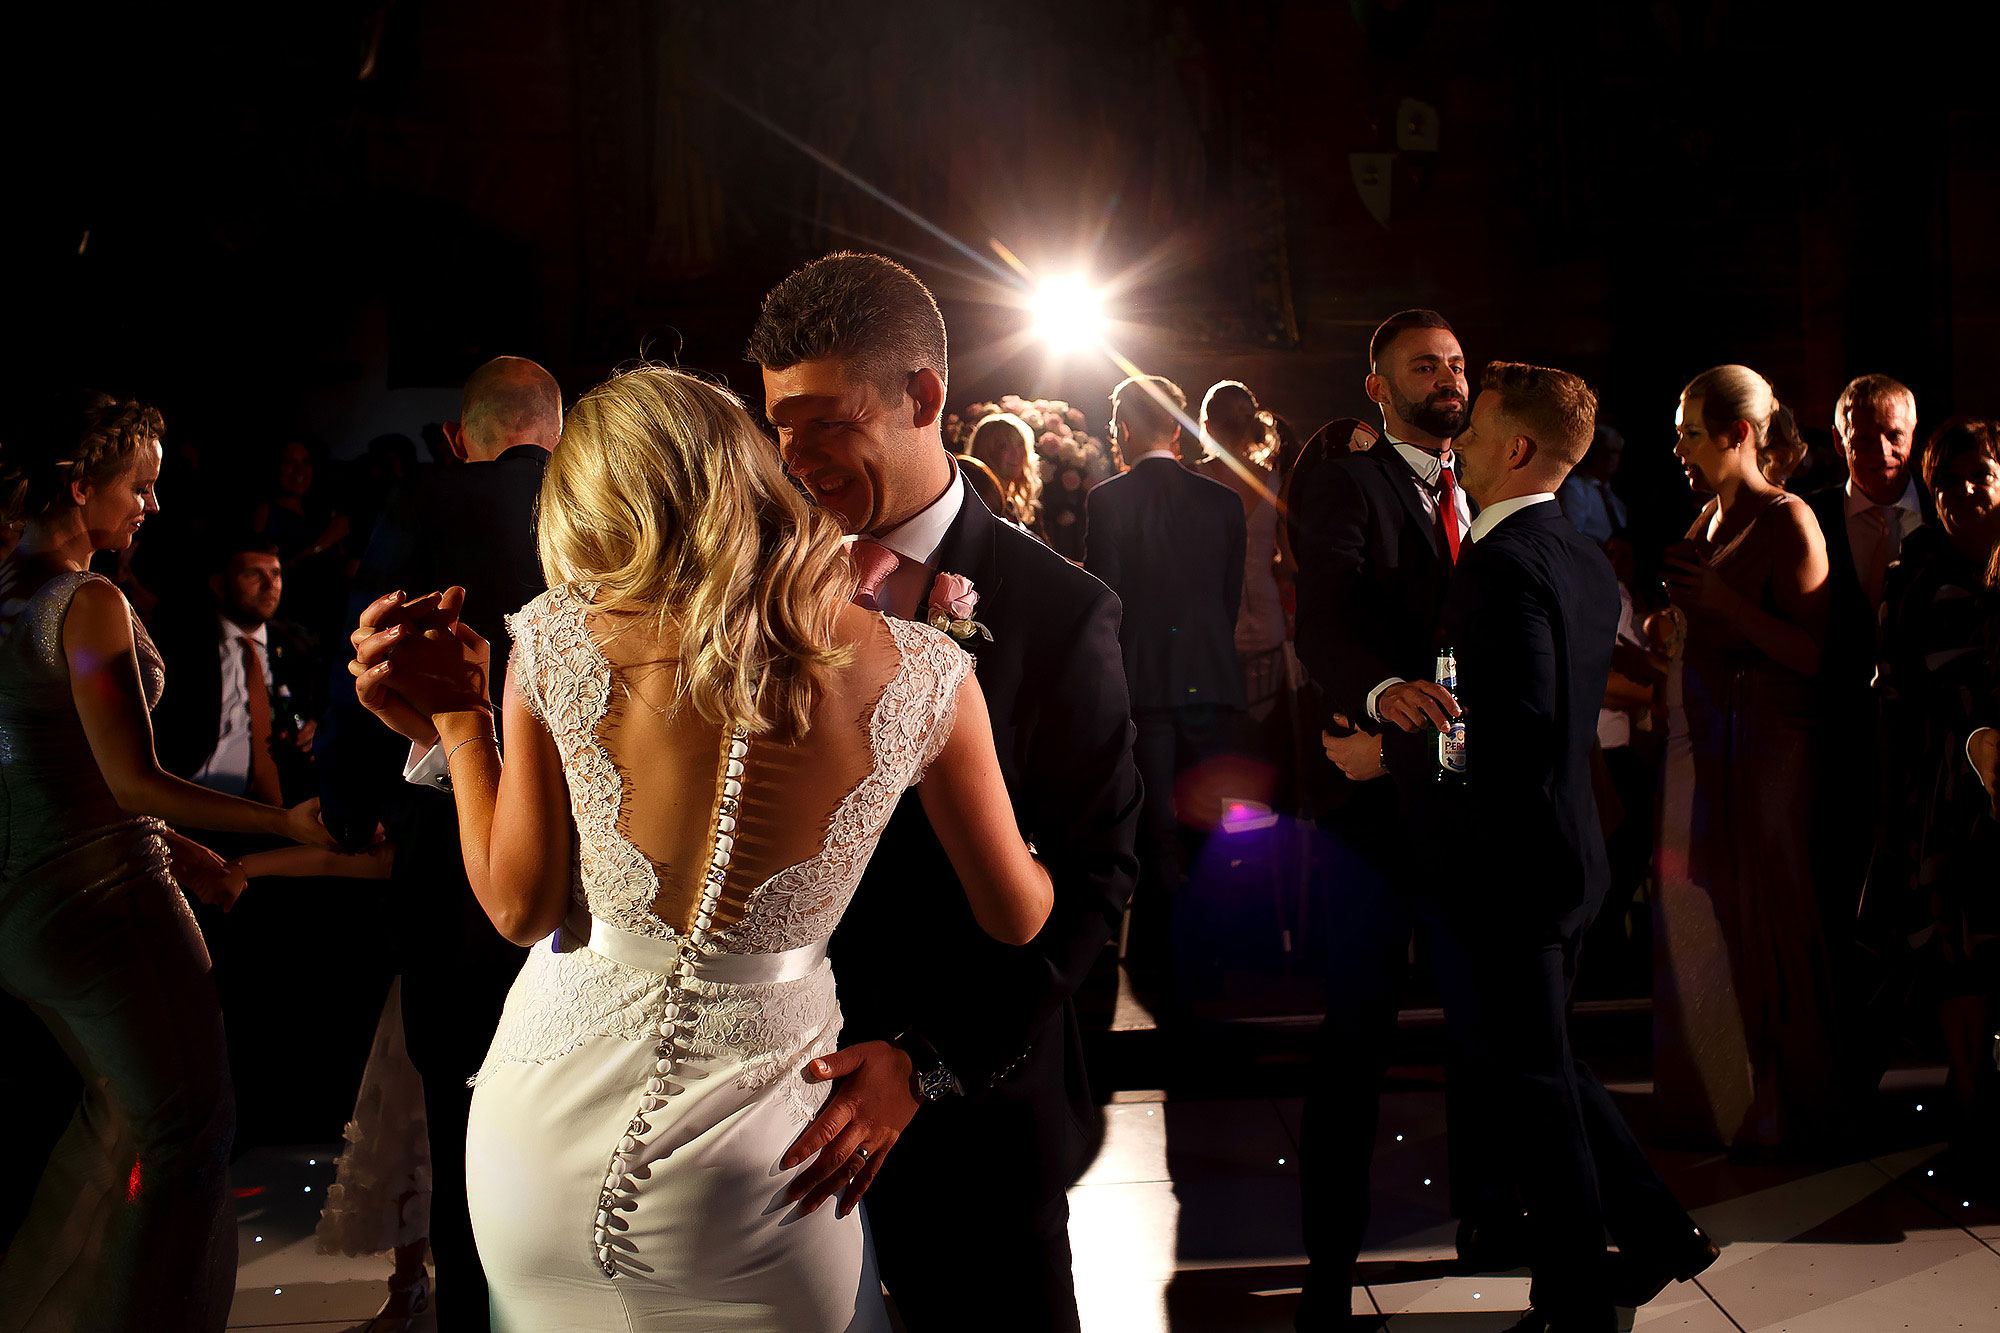 Bride with blonde hair and buttons all the way down the back of wedding dress dancing together on the dance floor | Peckforton Castle Wedding by Toni Darcy Photography